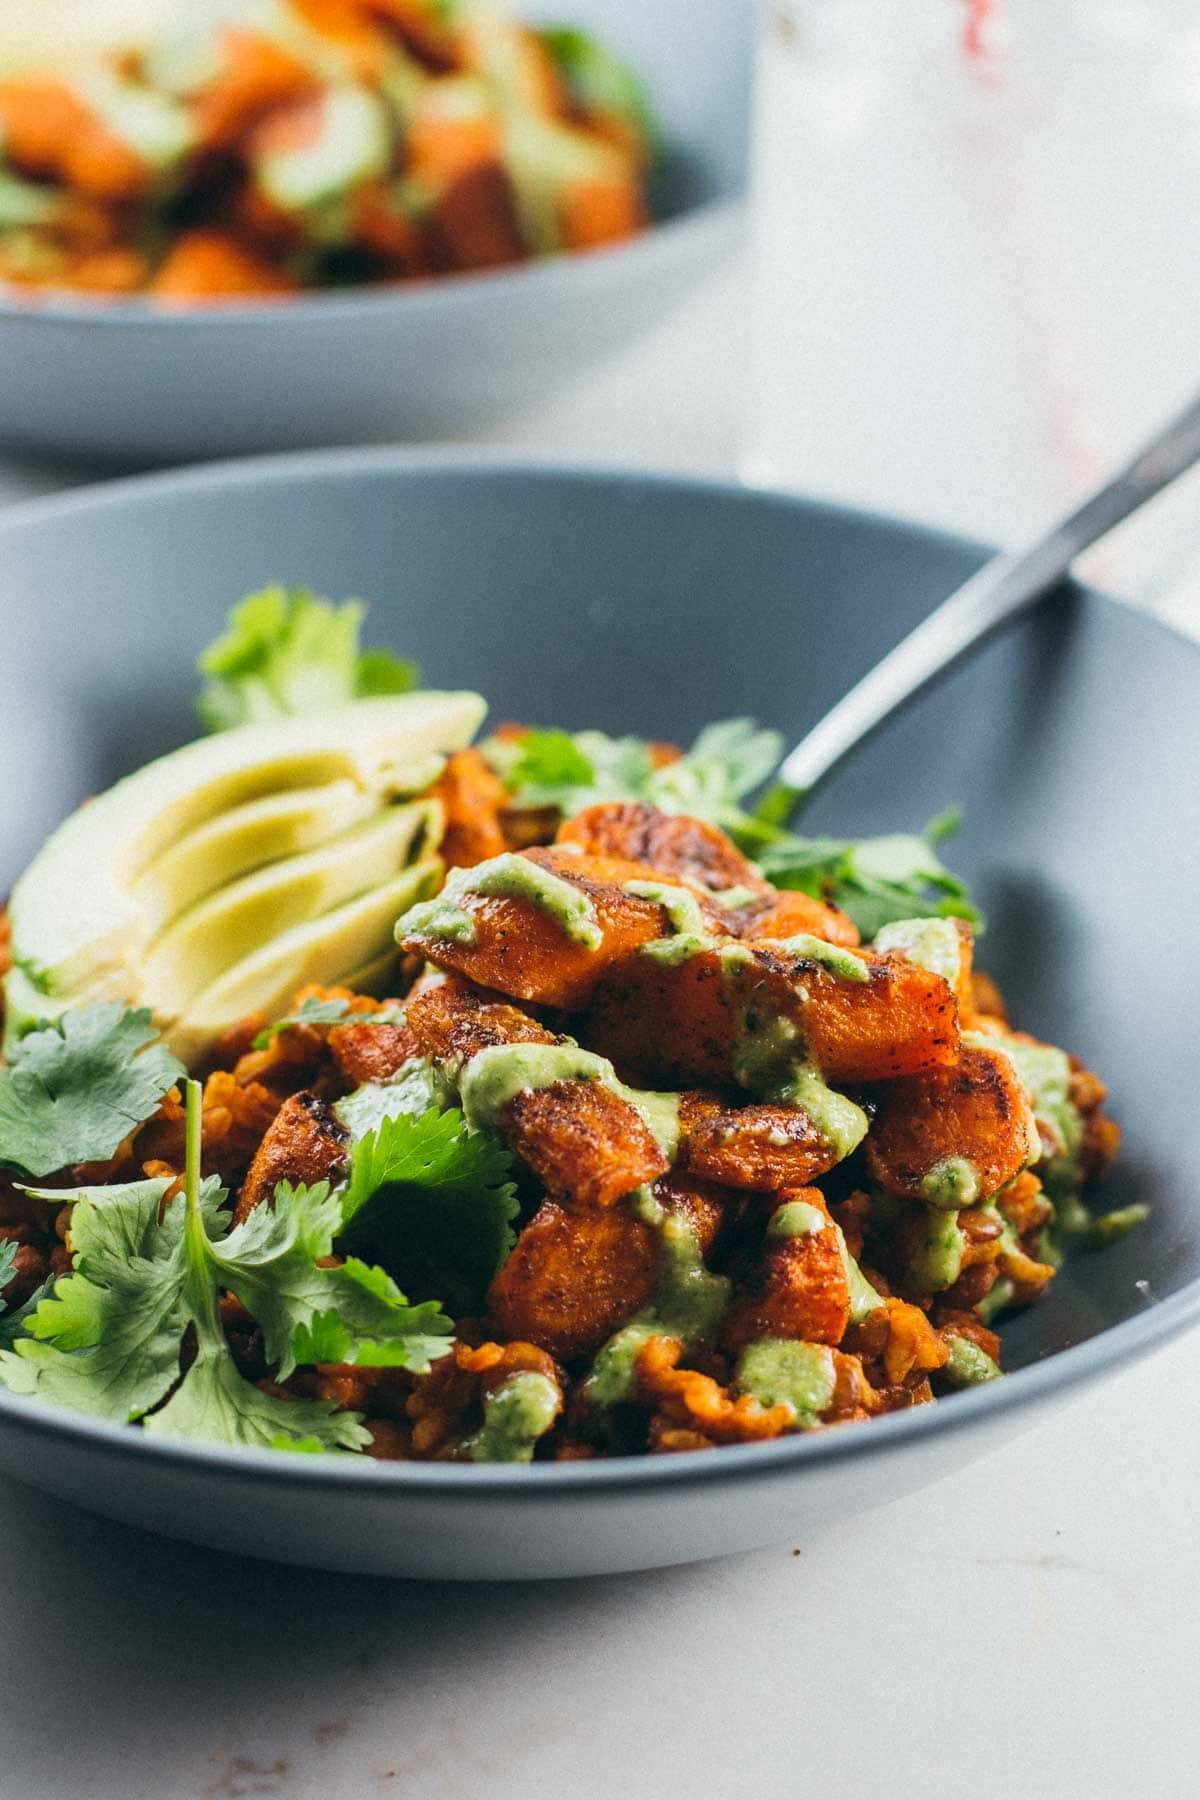 Lentil Curry Bowl with a fork.